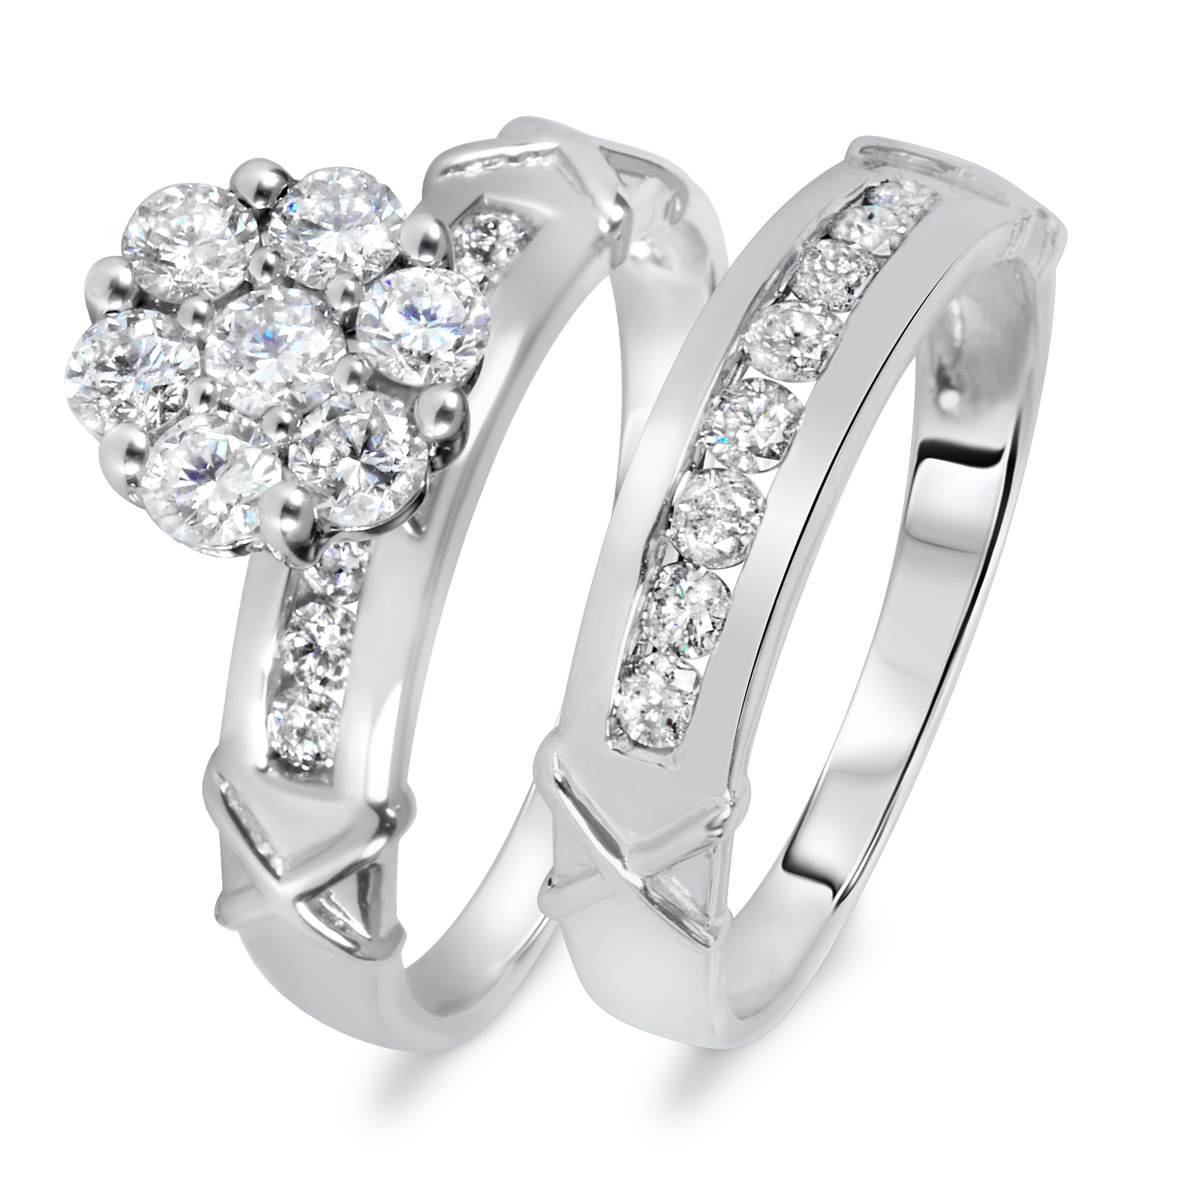 1 1/8 CT. T.W. Diamond Women's Bridal Wedding Ring Set 14K White Gold